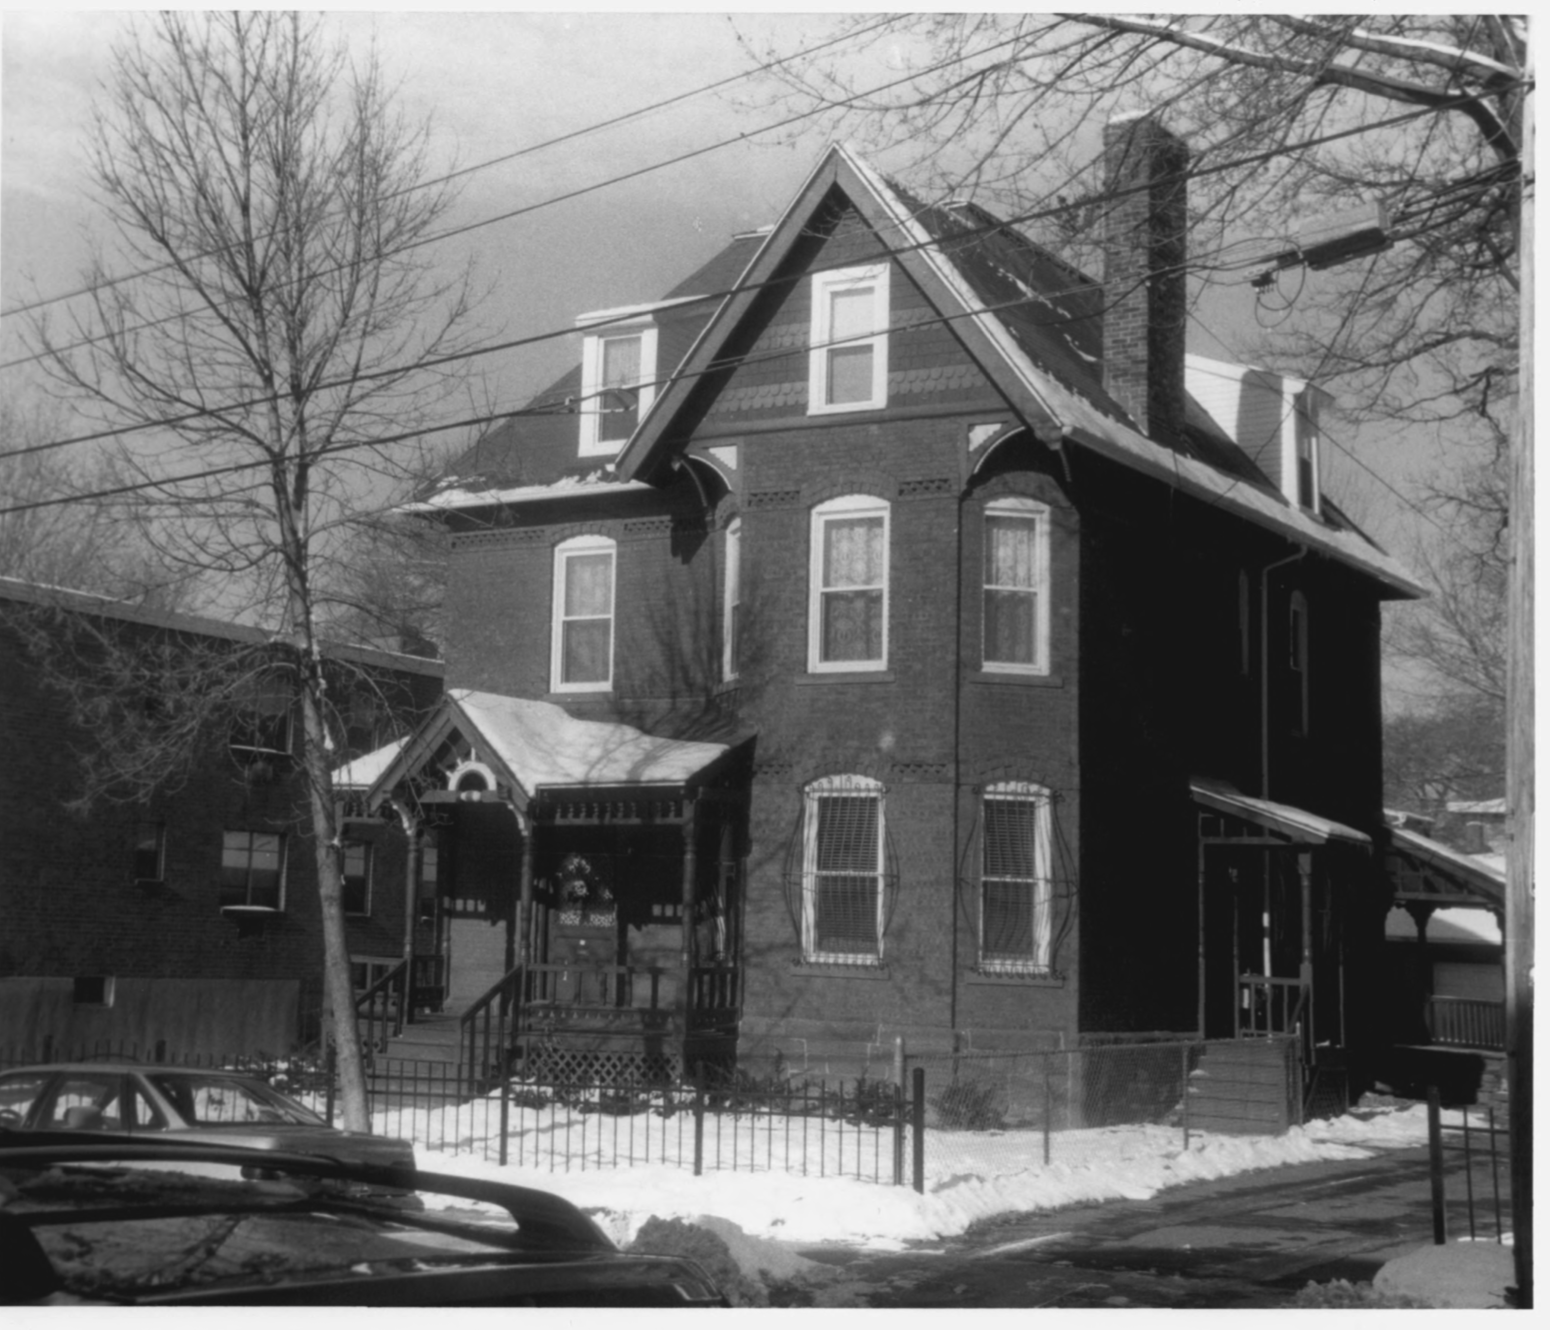 Allen Place - Lincoln Street Historic District Photo Record, Maintained by the NPS, Photo 15